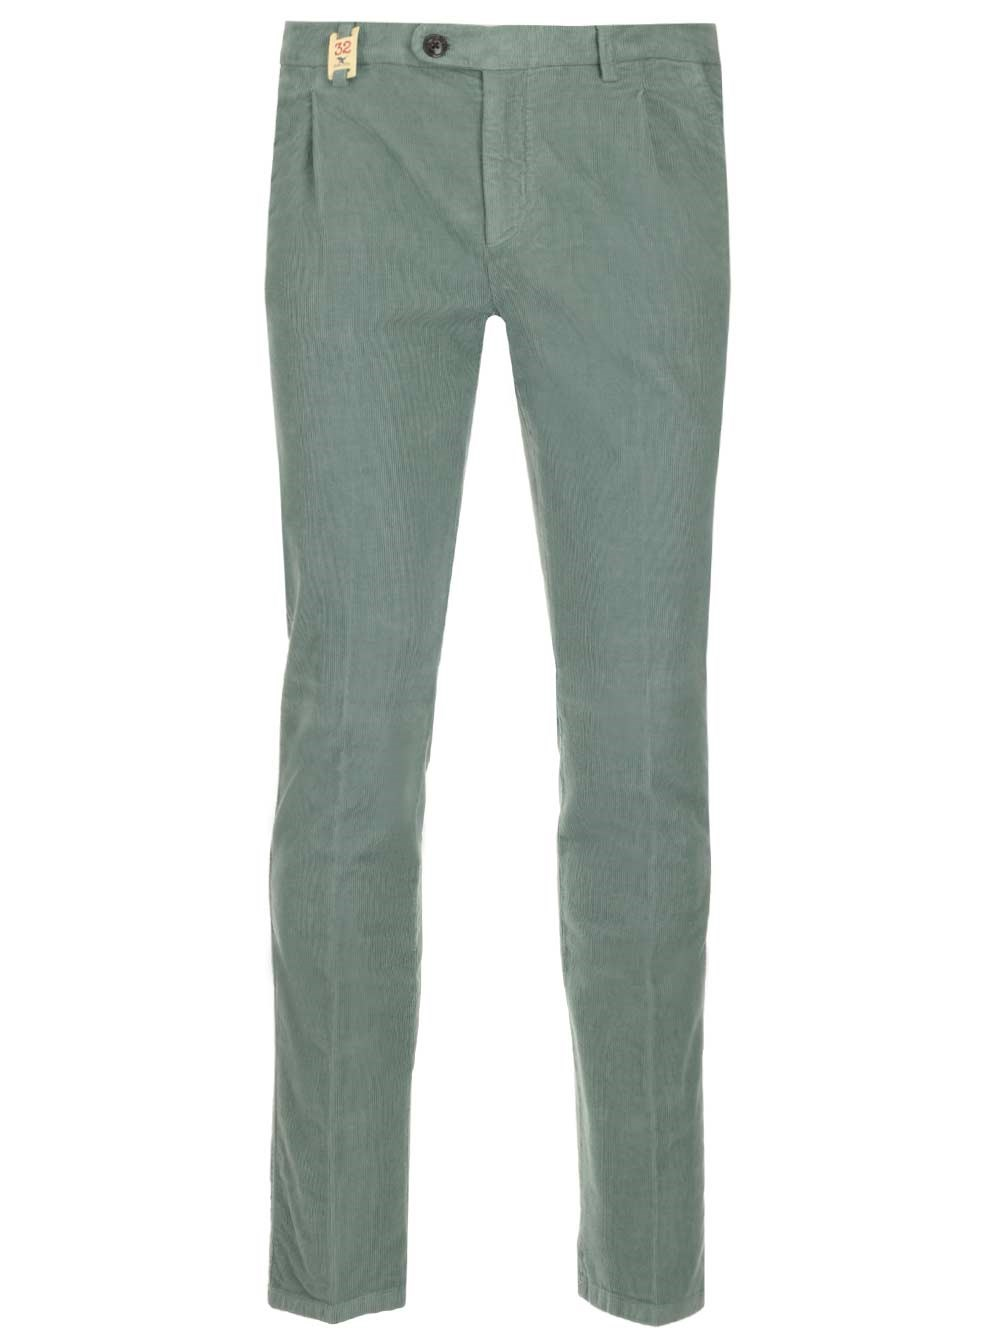 BARMAS Light Green Velvet Trousers